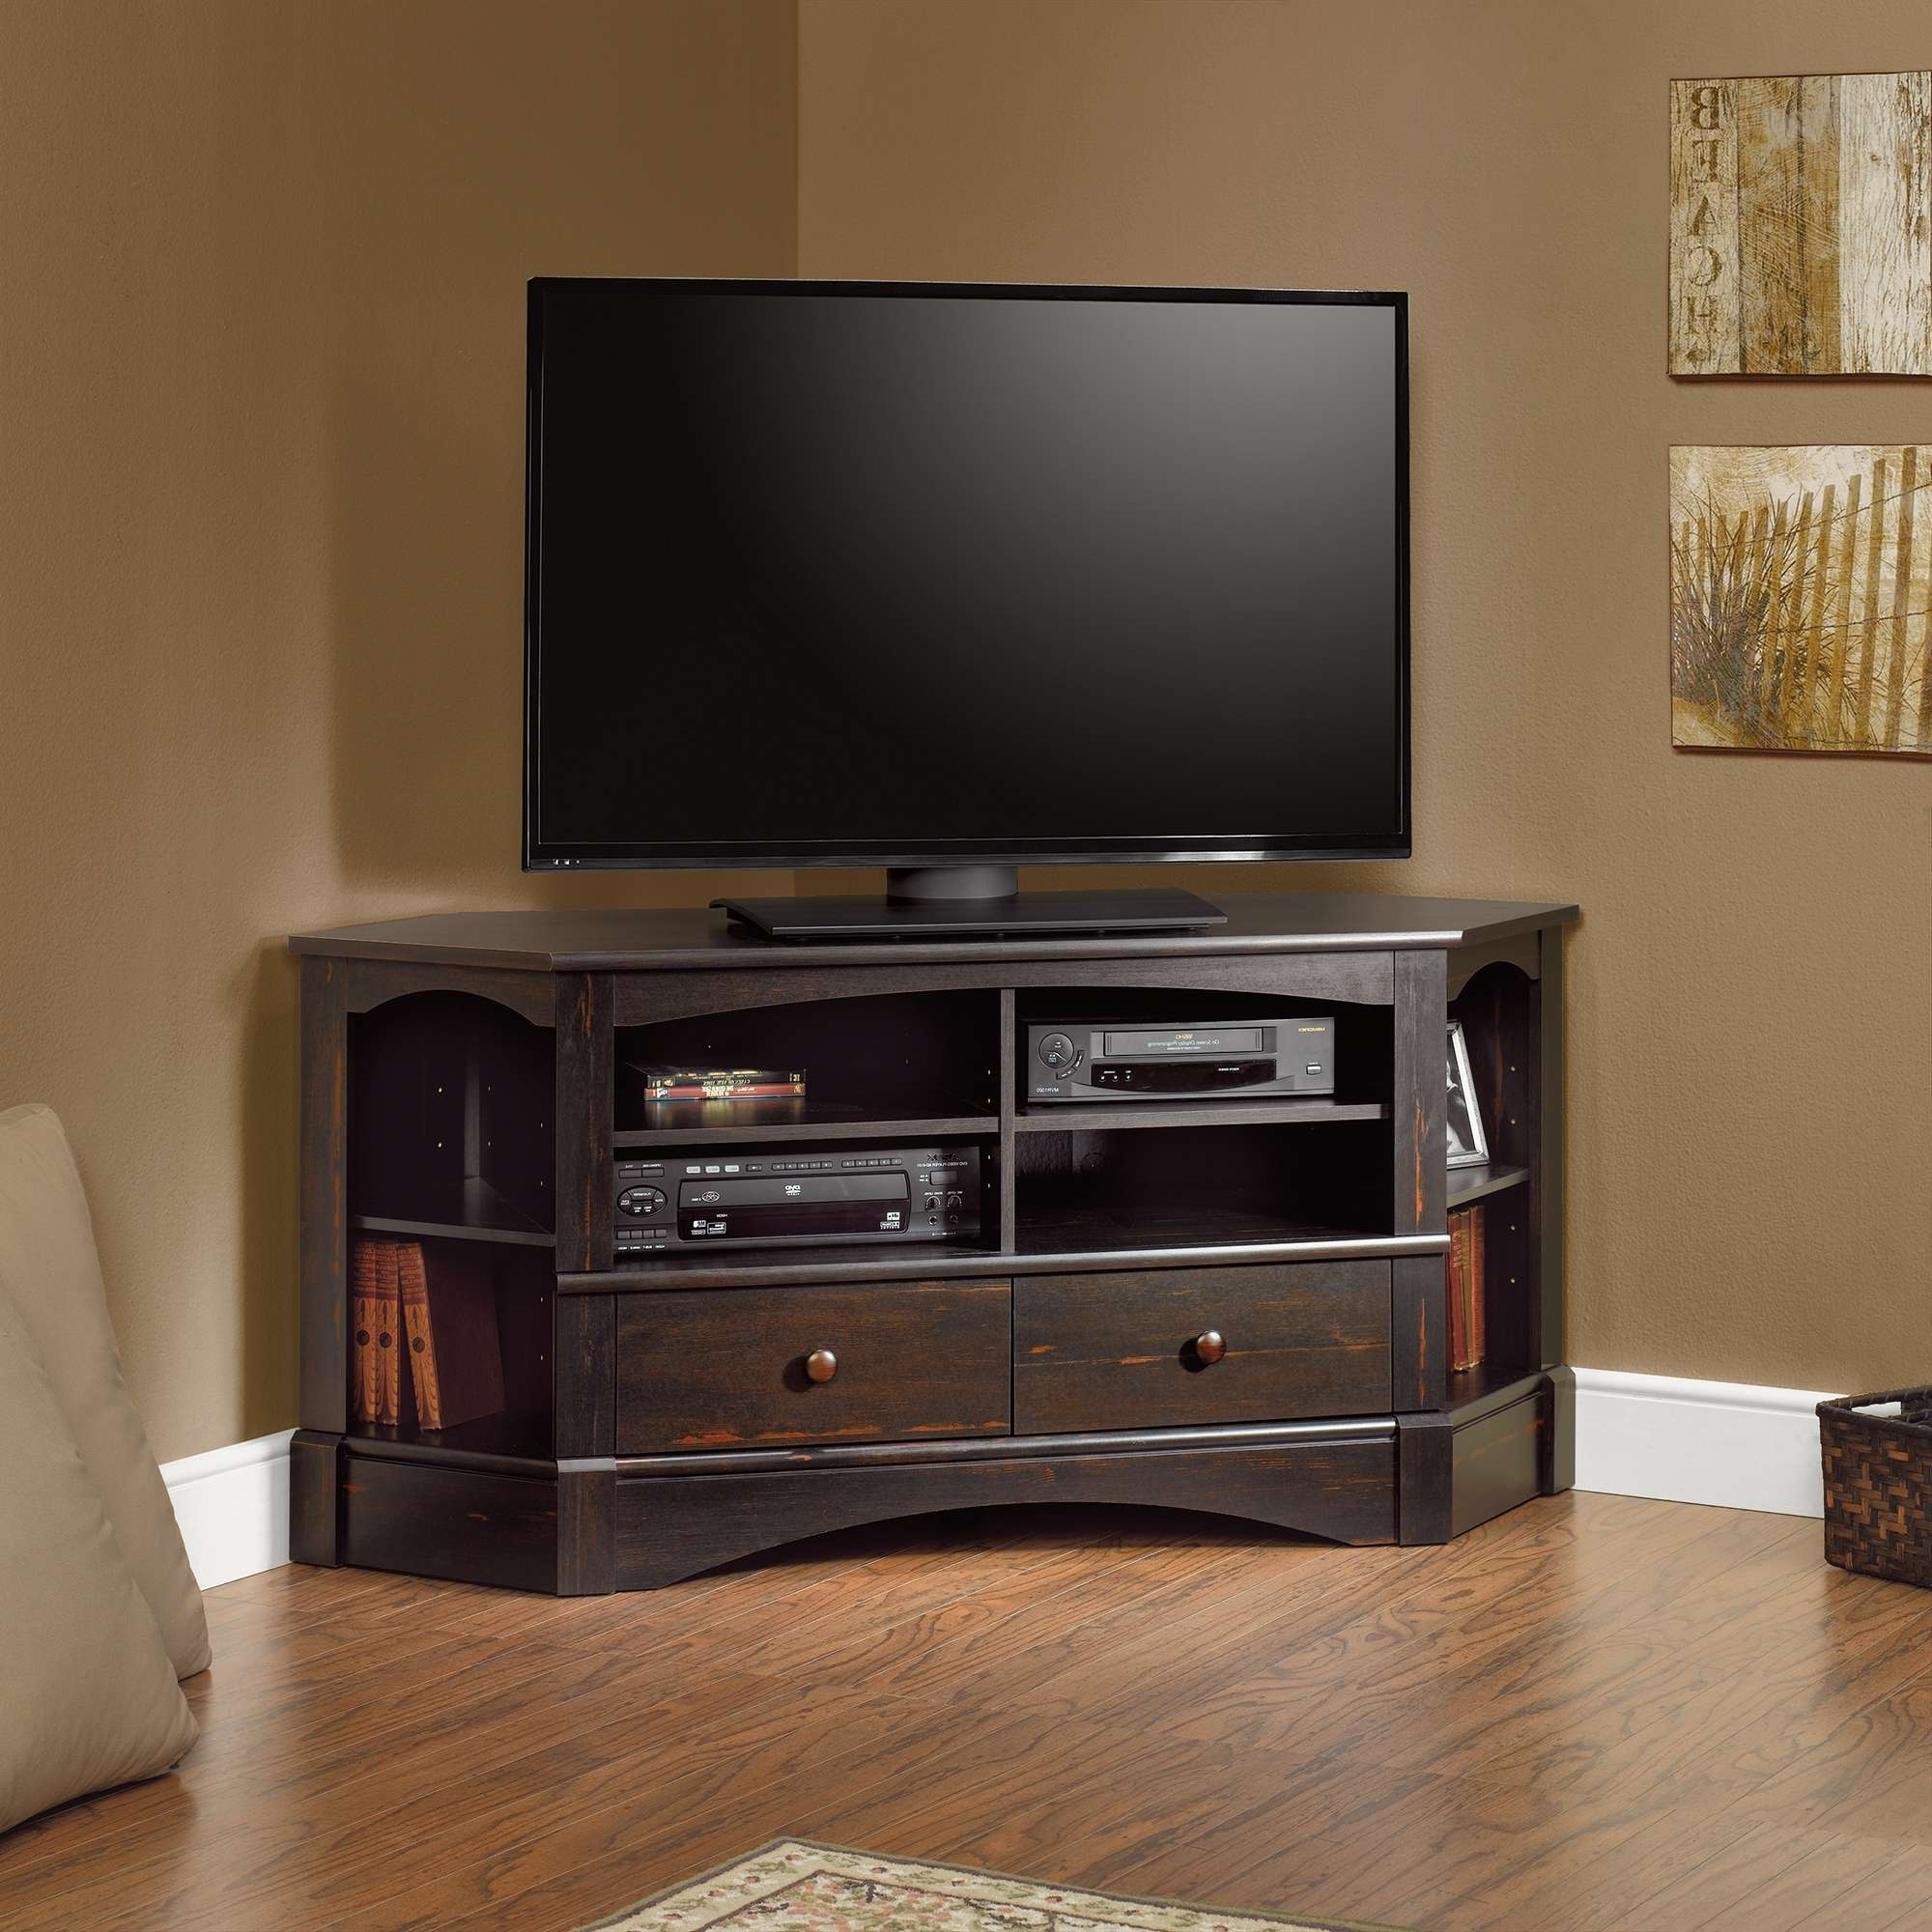 Harbor View | Corner Entertainment Credenza | 402902 | Sauder With Corner Tv Cabinets (View 6 of 20)